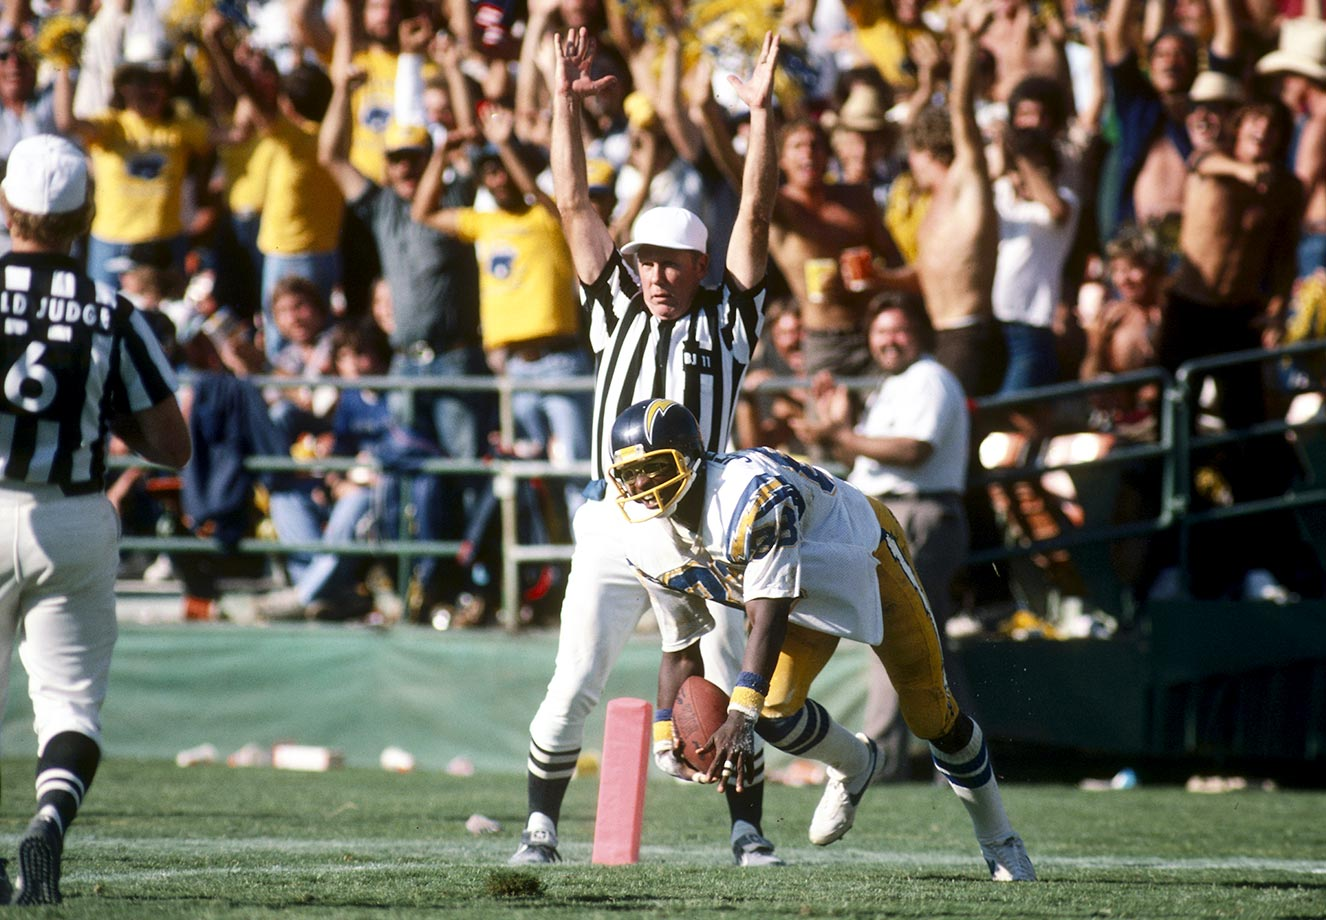 1980: John Jefferson one-hand diving catch in the back of the endzone vs. Oakland.